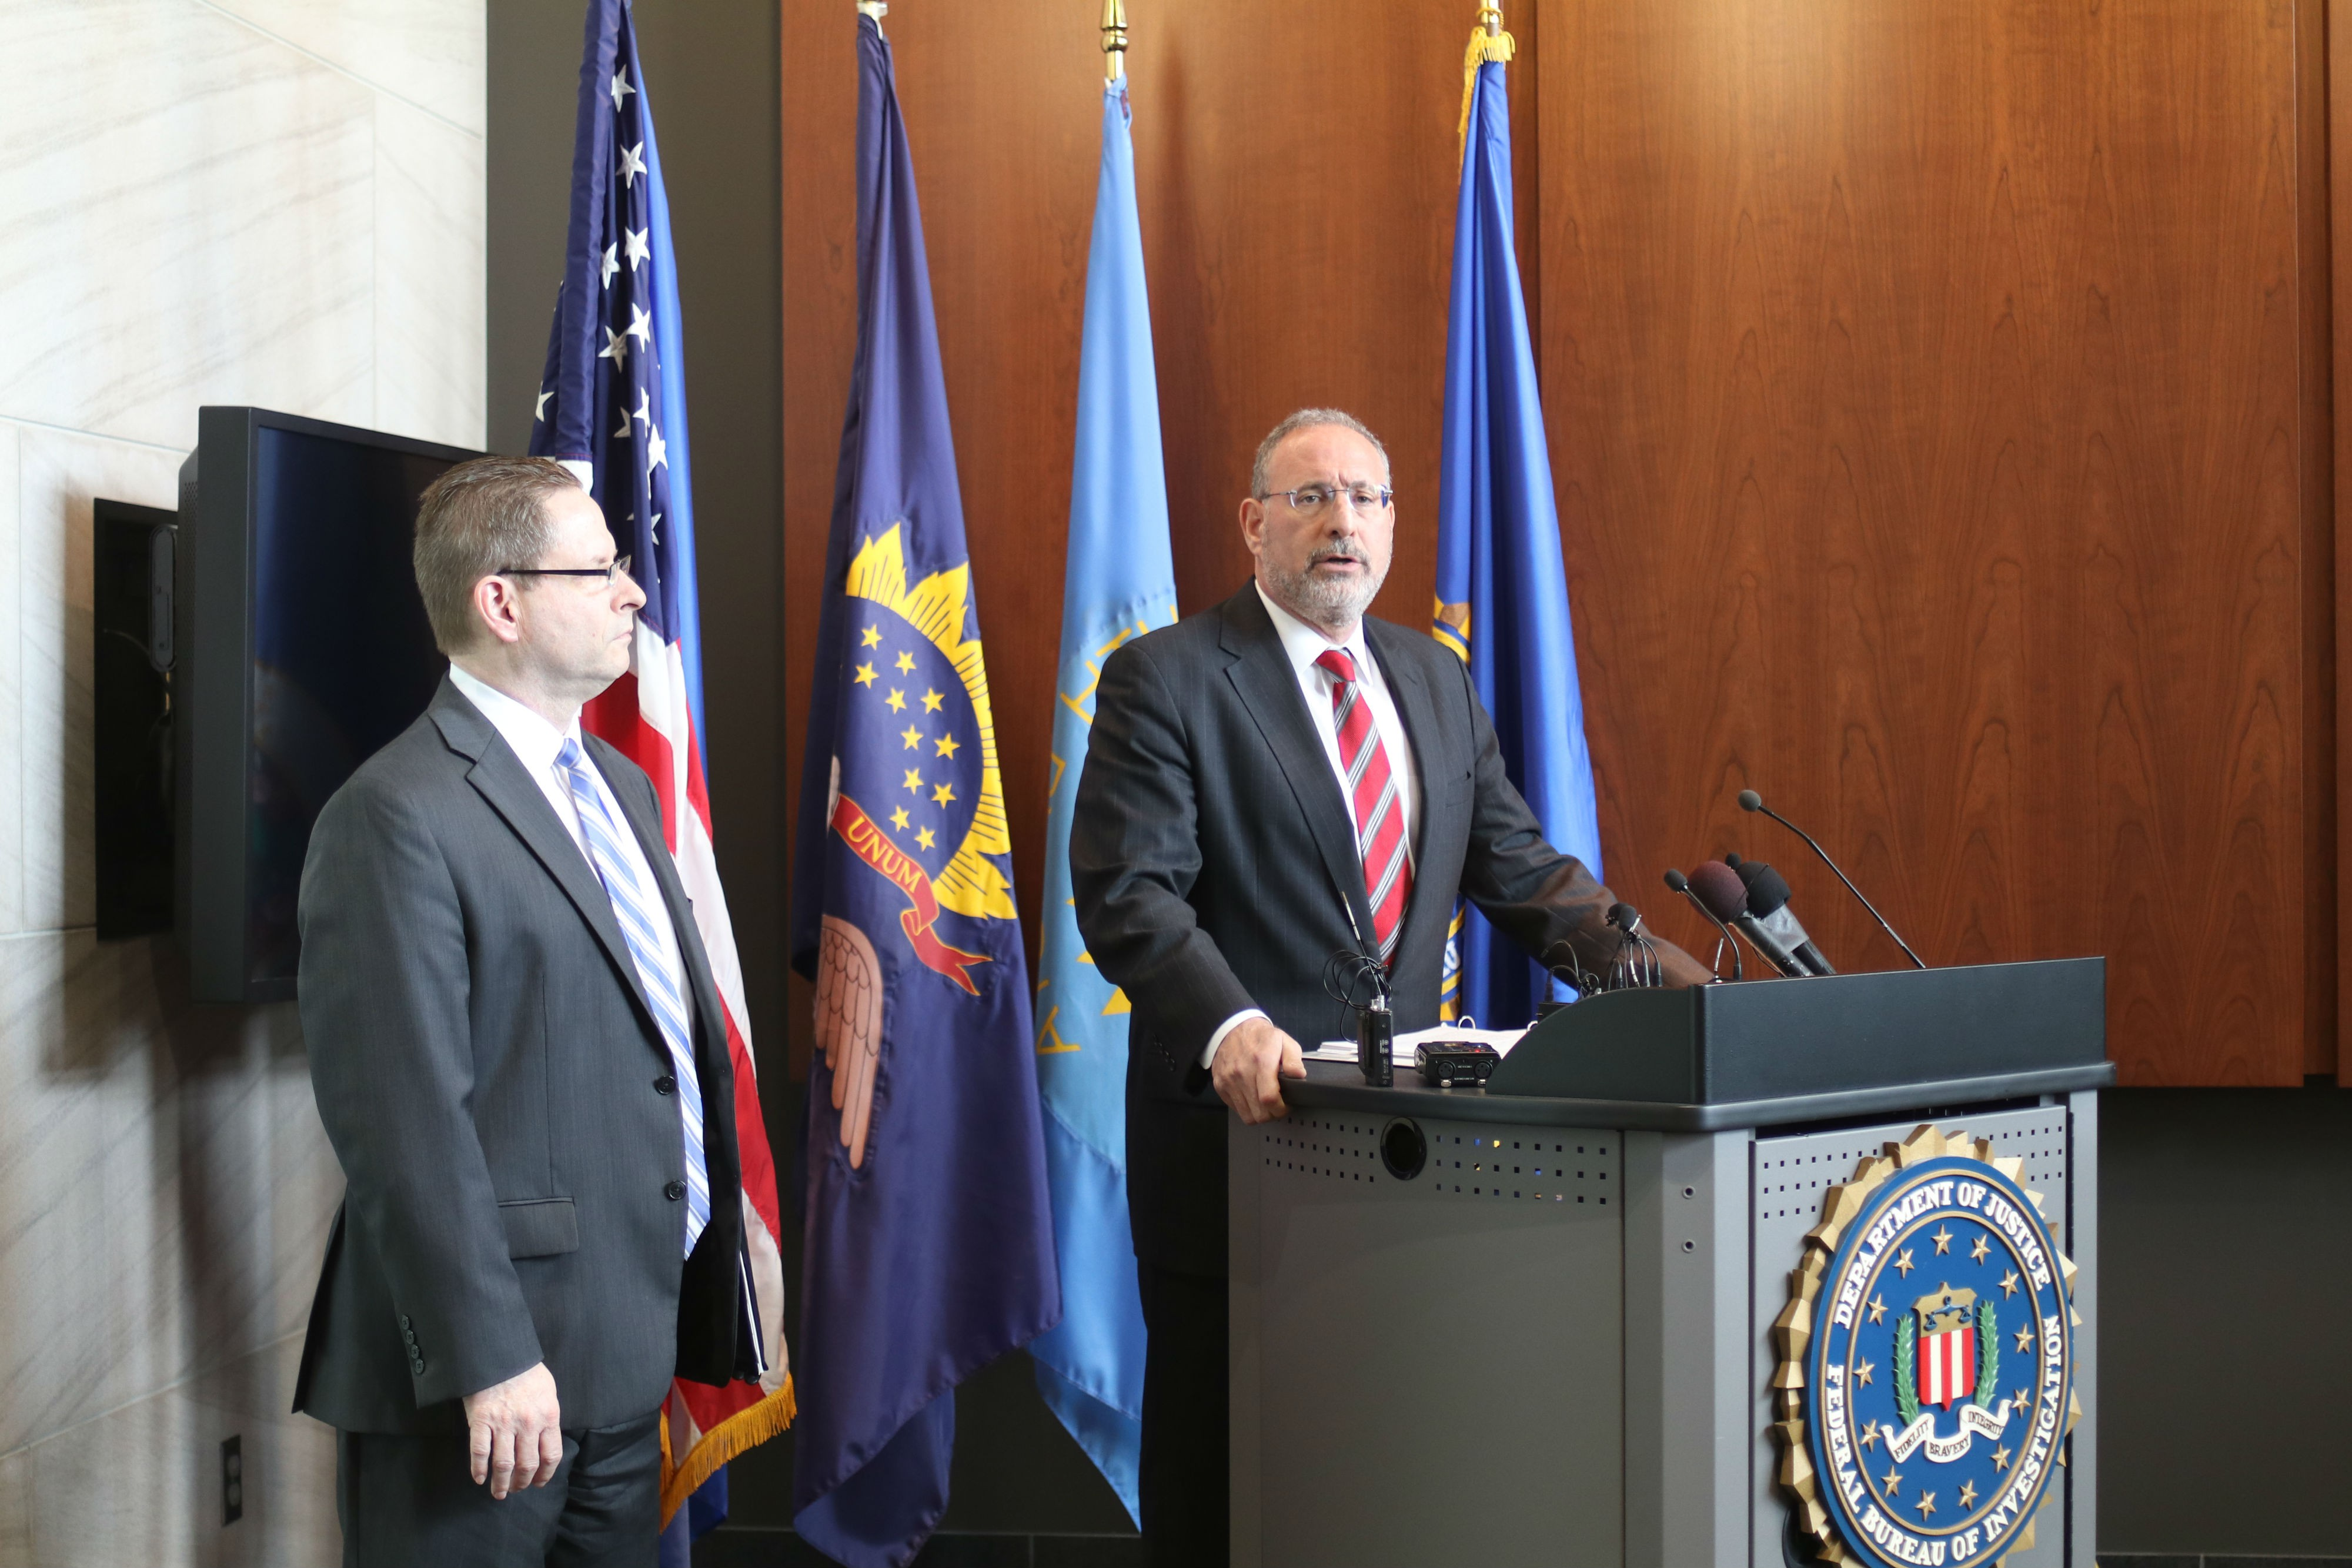 DOJ: No Charges Against Police In Jamar Clark Case